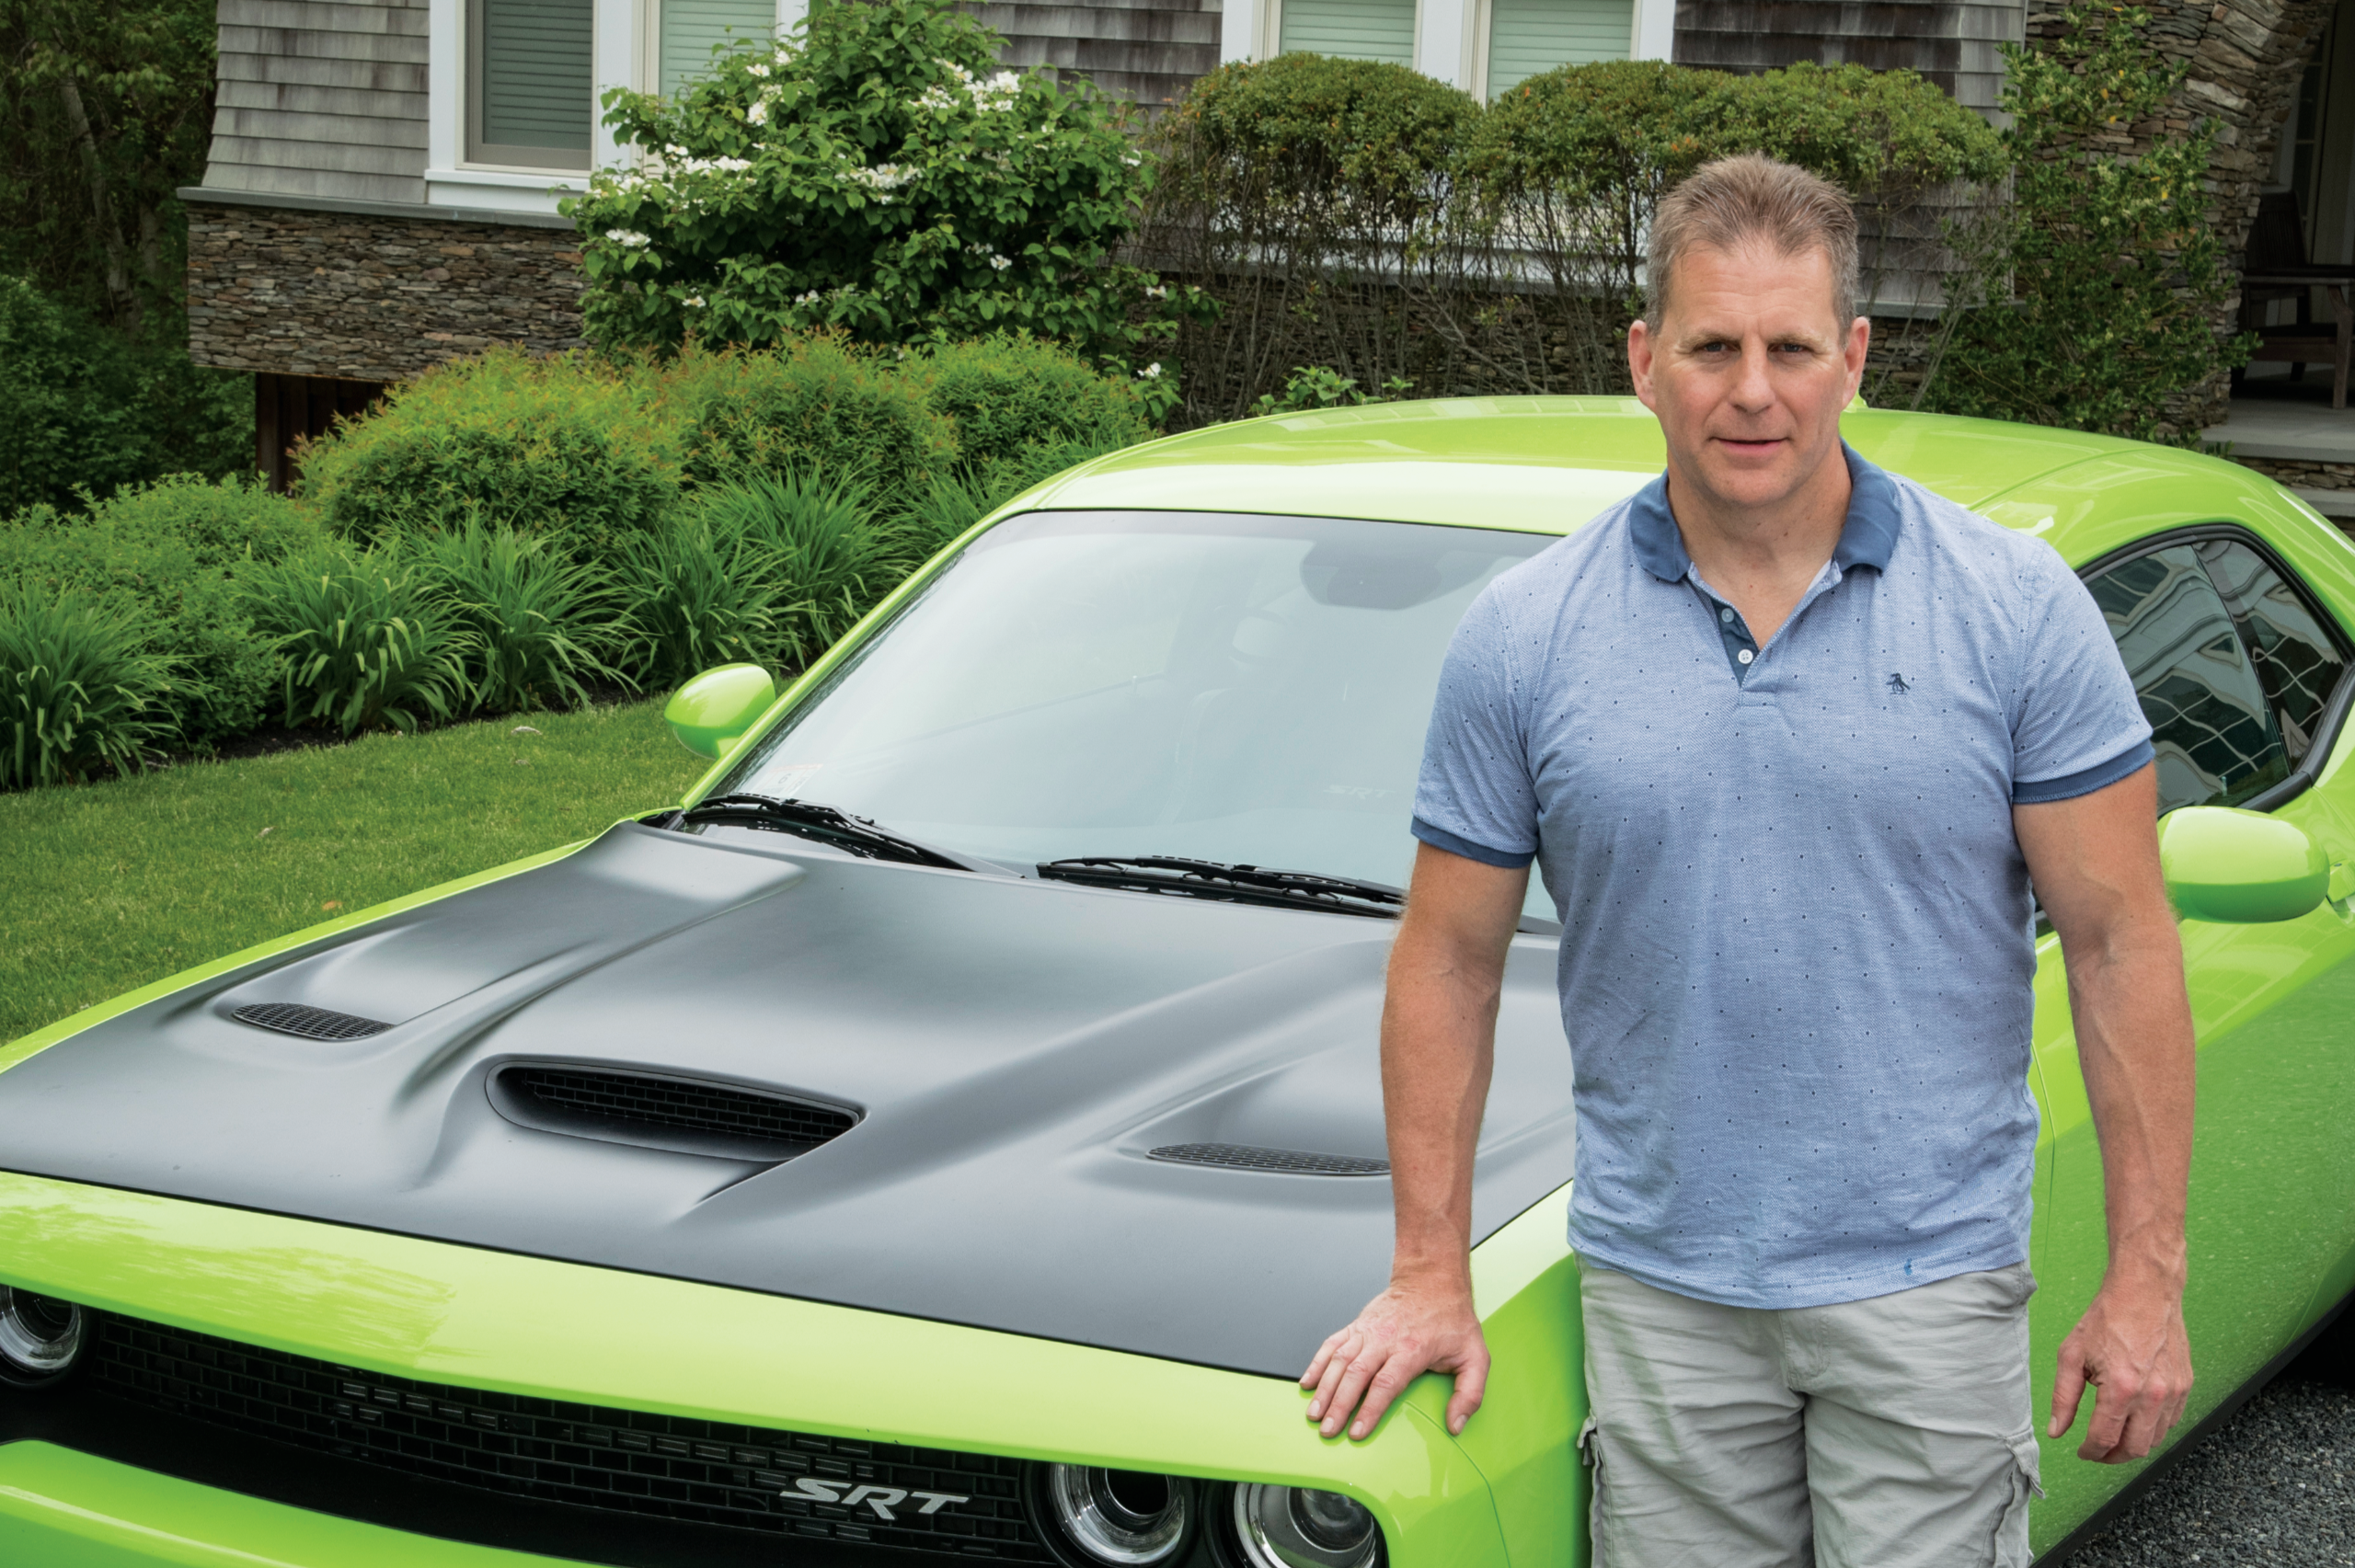 William Eigen standing in front of a green muscle car